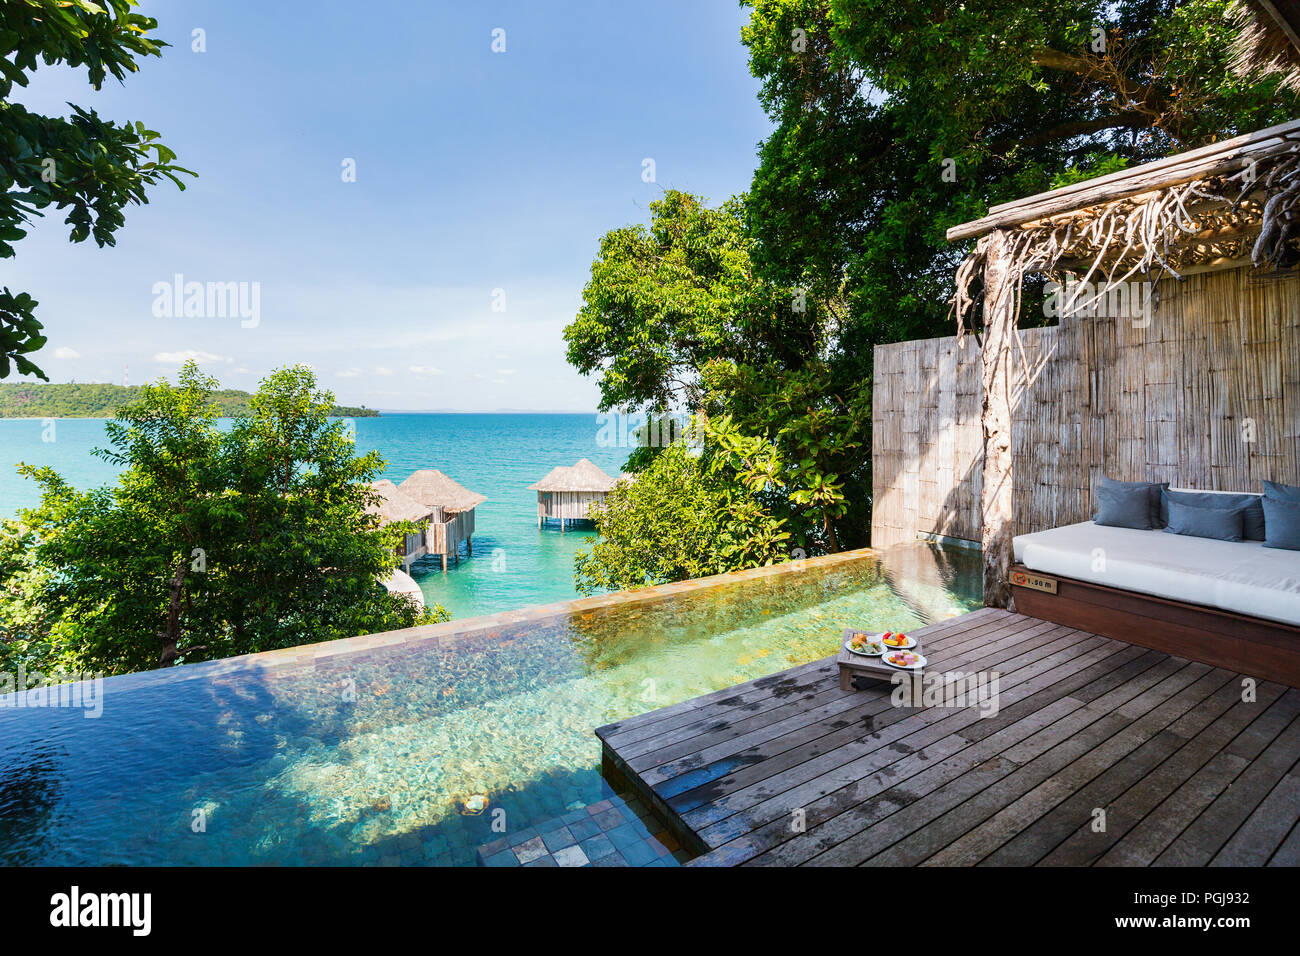 Stylish bungalow with private swimming pool in luxury resort. - Stock Image